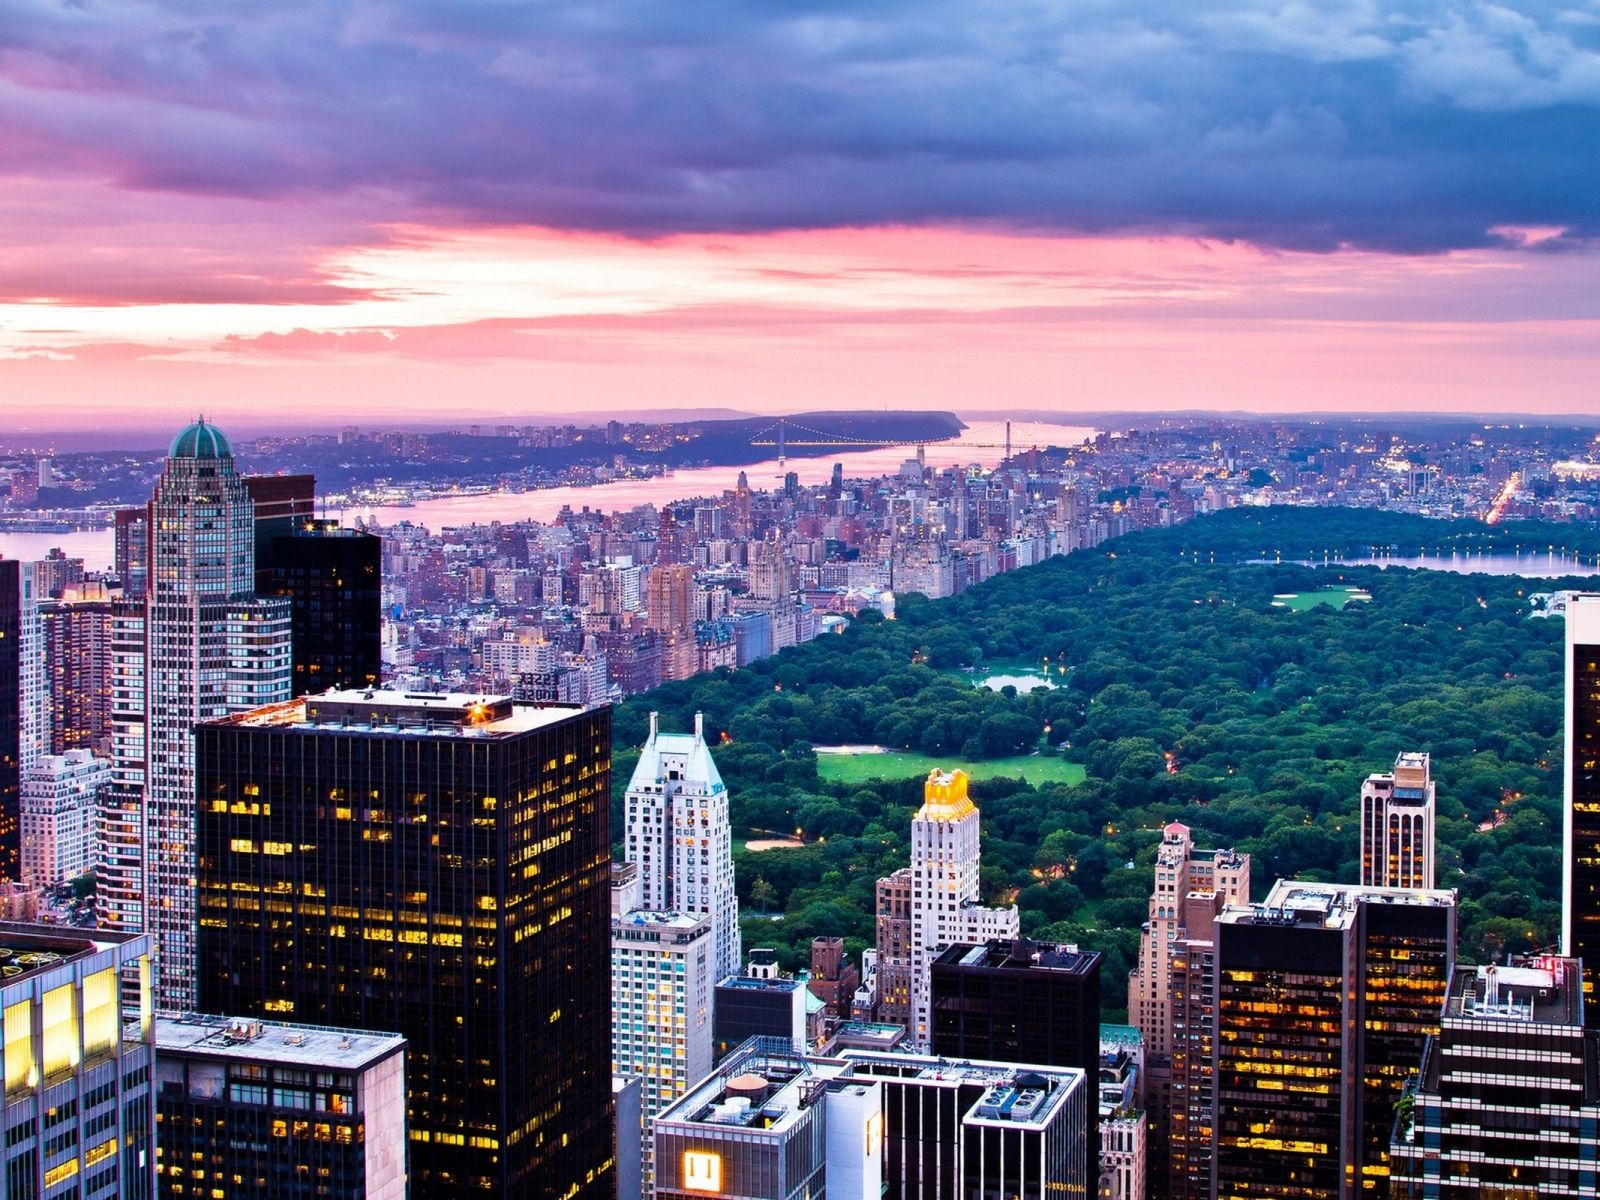 1600x1200 Wallpaper New York City Night Buildings Sky View From Above New York City Central Park New York City Background New York Wallpaper